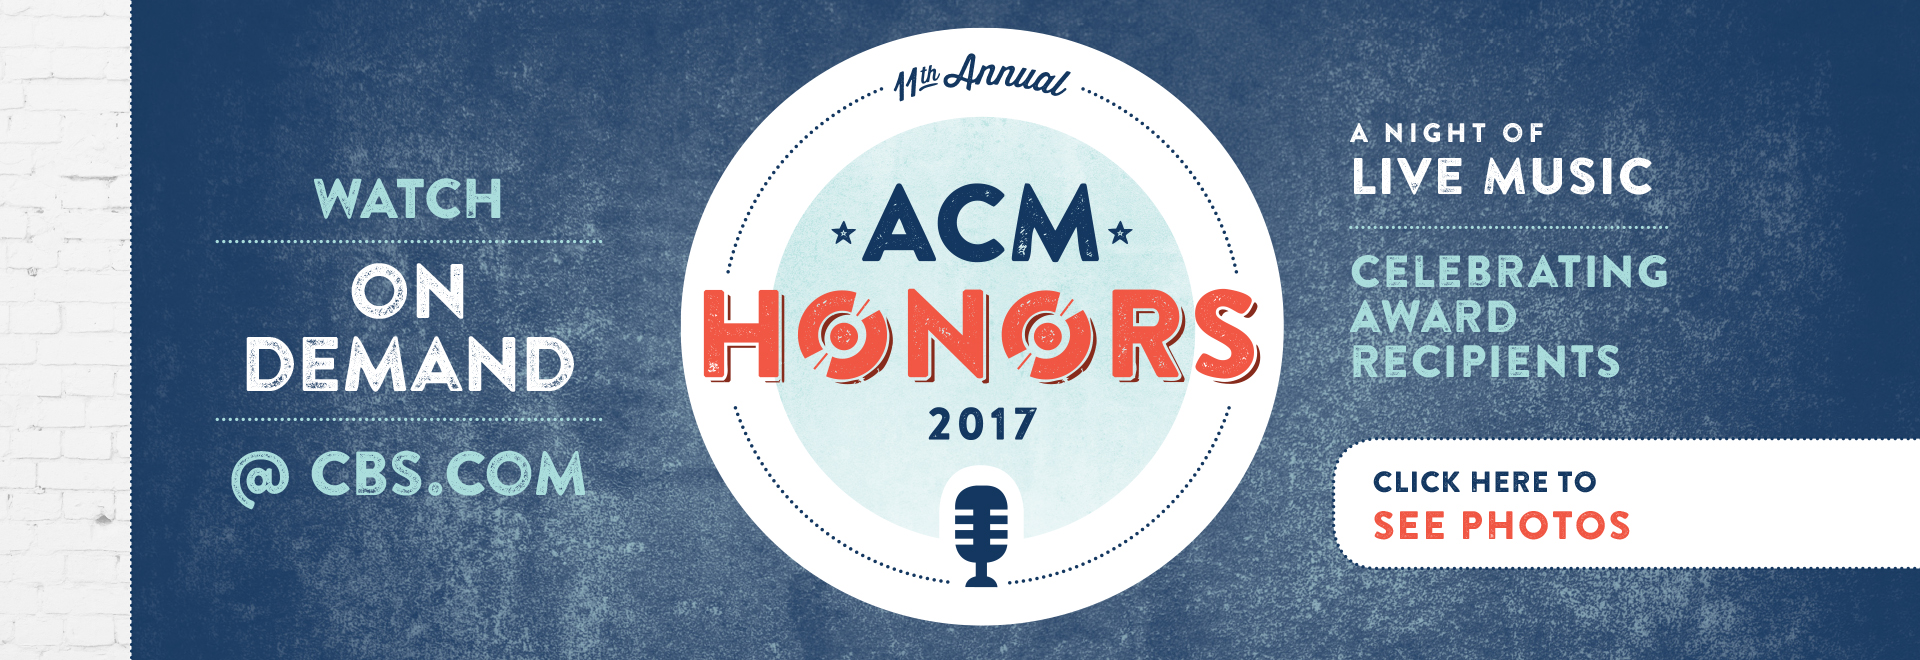 acm_Honors2017_rotatorONDEMAND_1920x660_091517 _1_.jpg